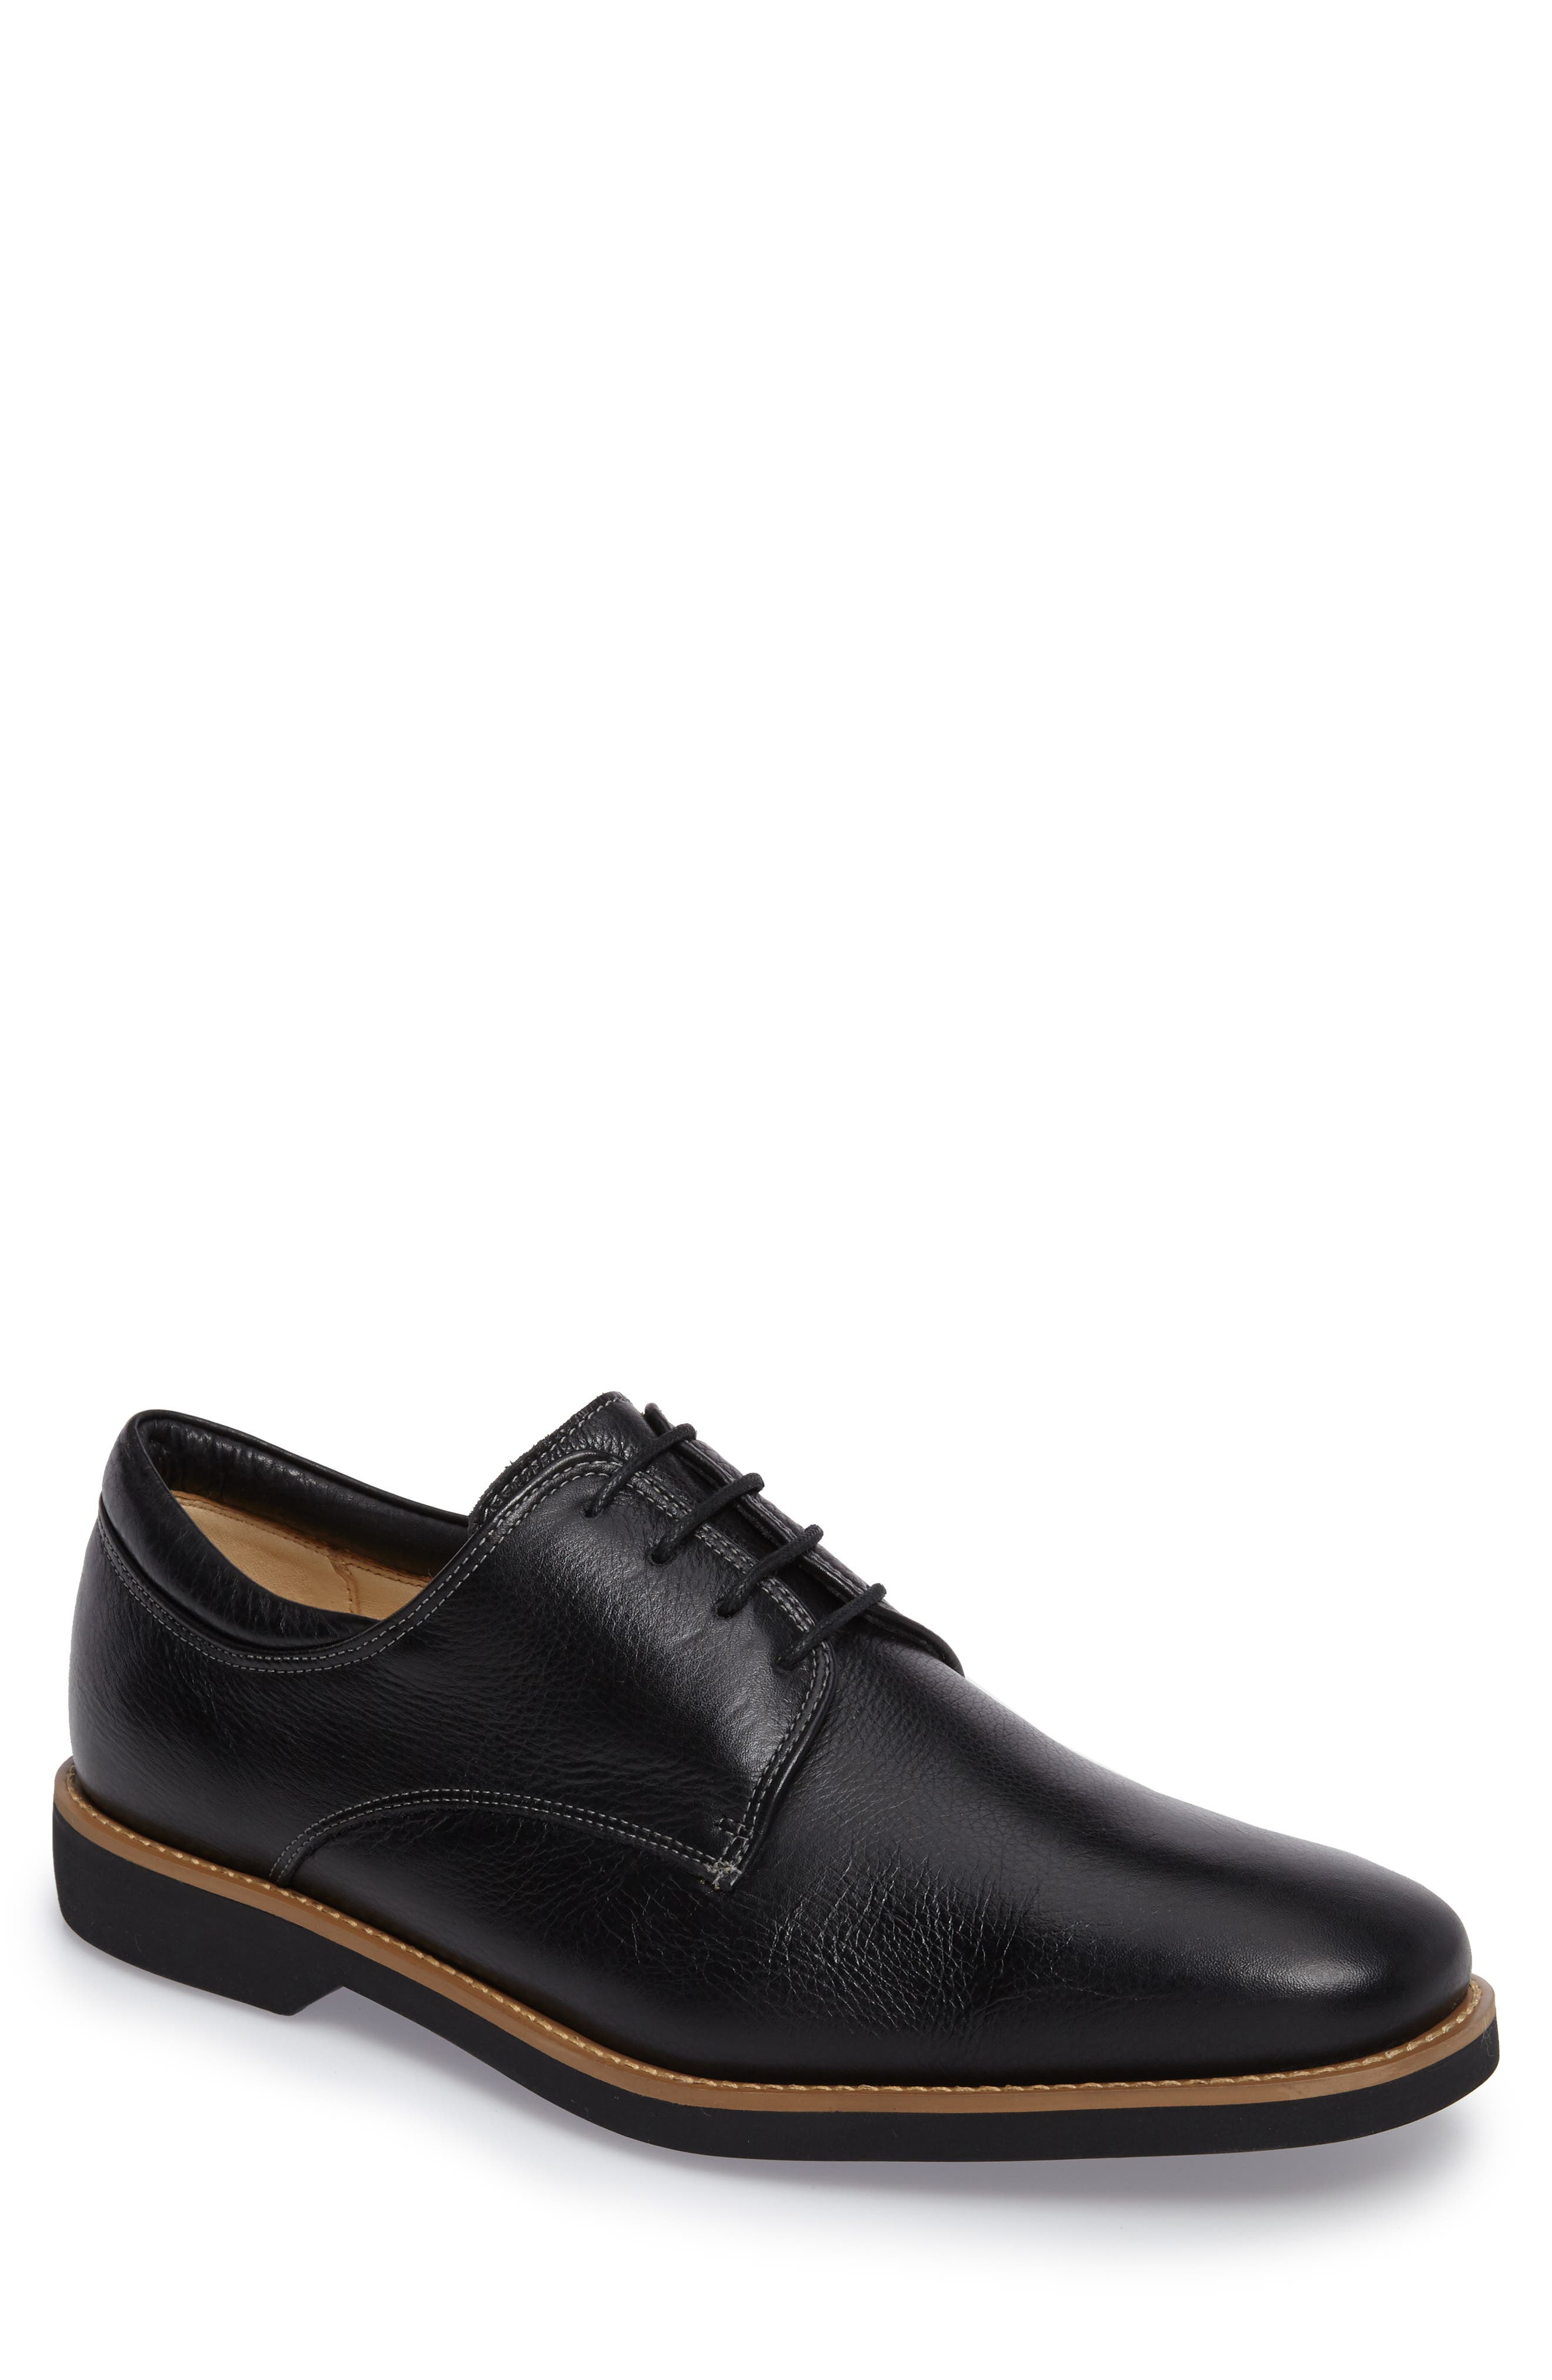 Anatomic & Co 'Delta' Plain Toe Derby (Men)